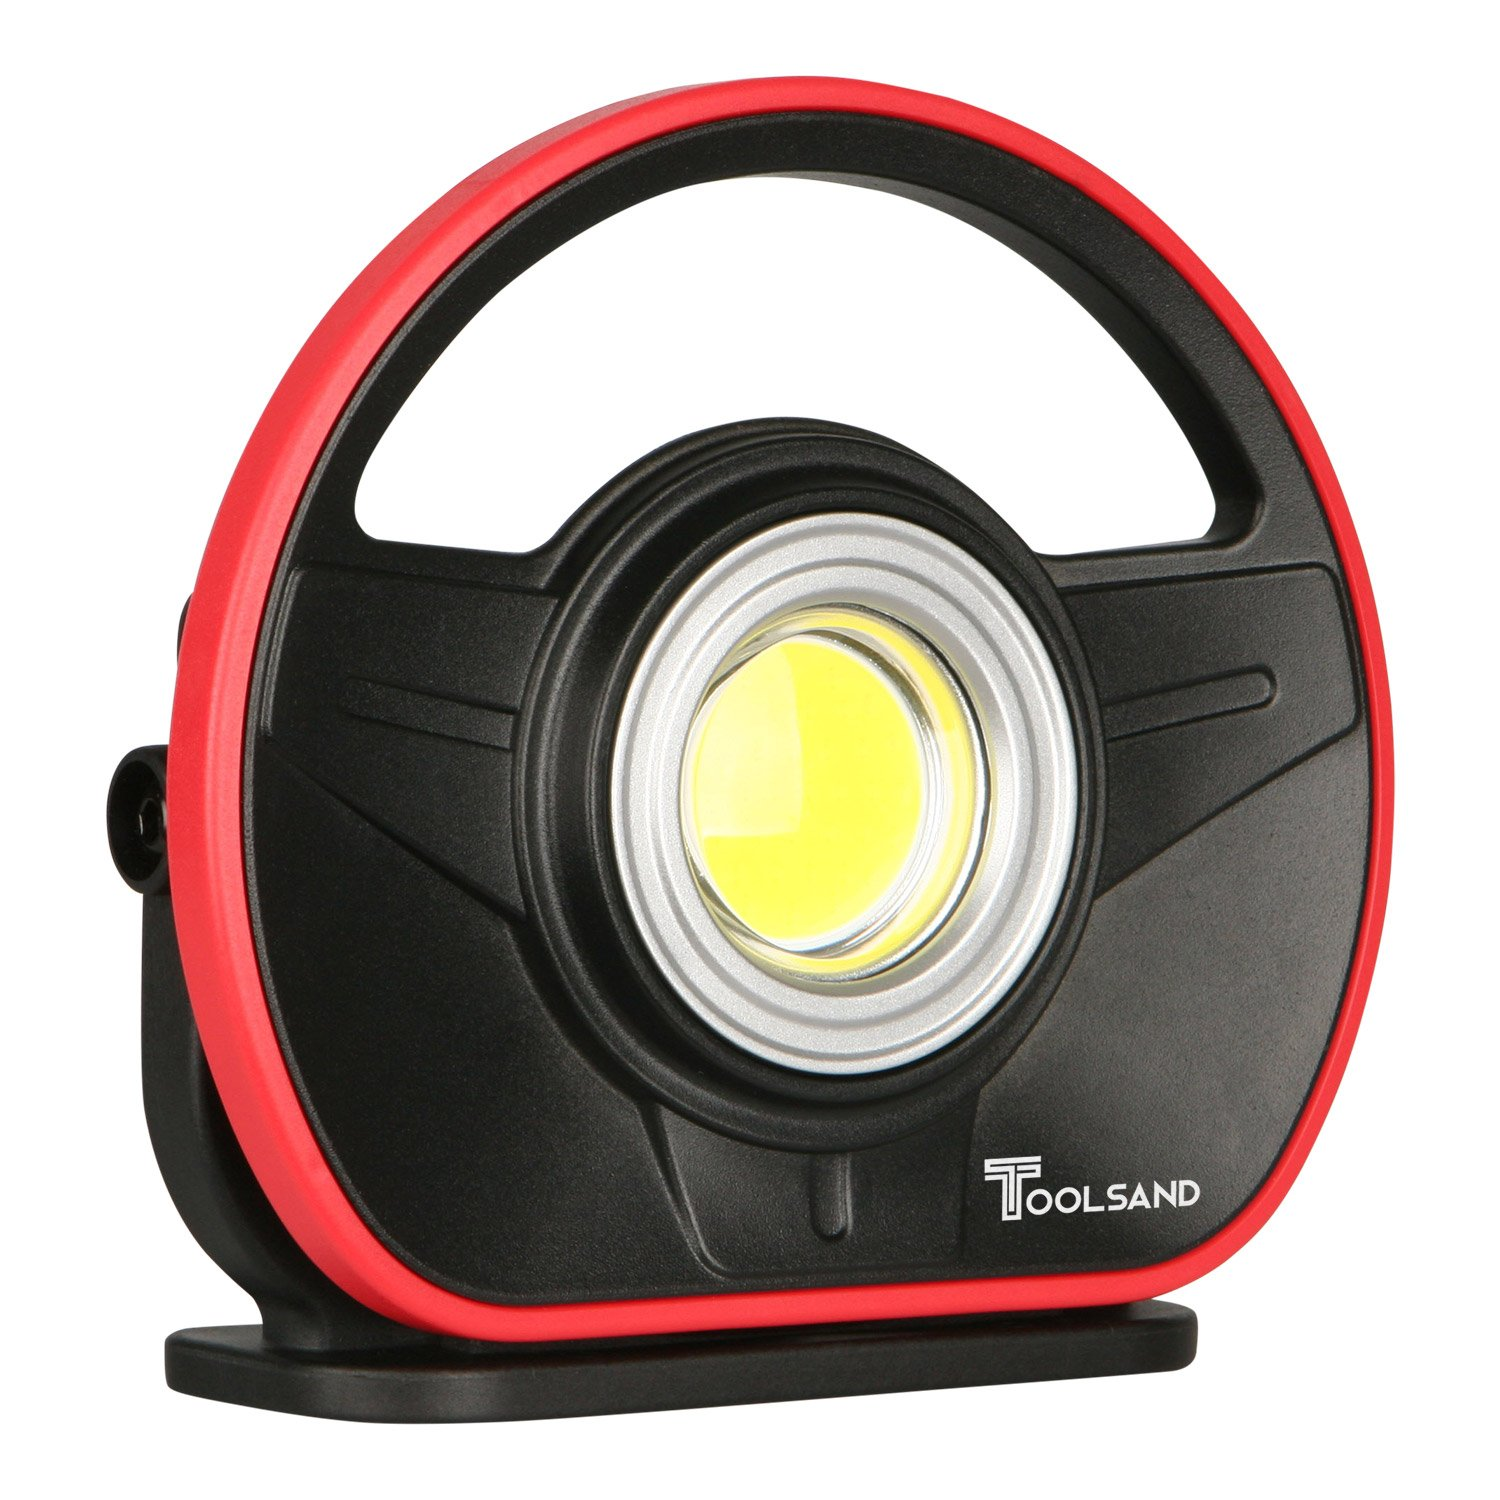 Toolsand High Power Portable Cordless Rechargeable LED Worklight Floodlight